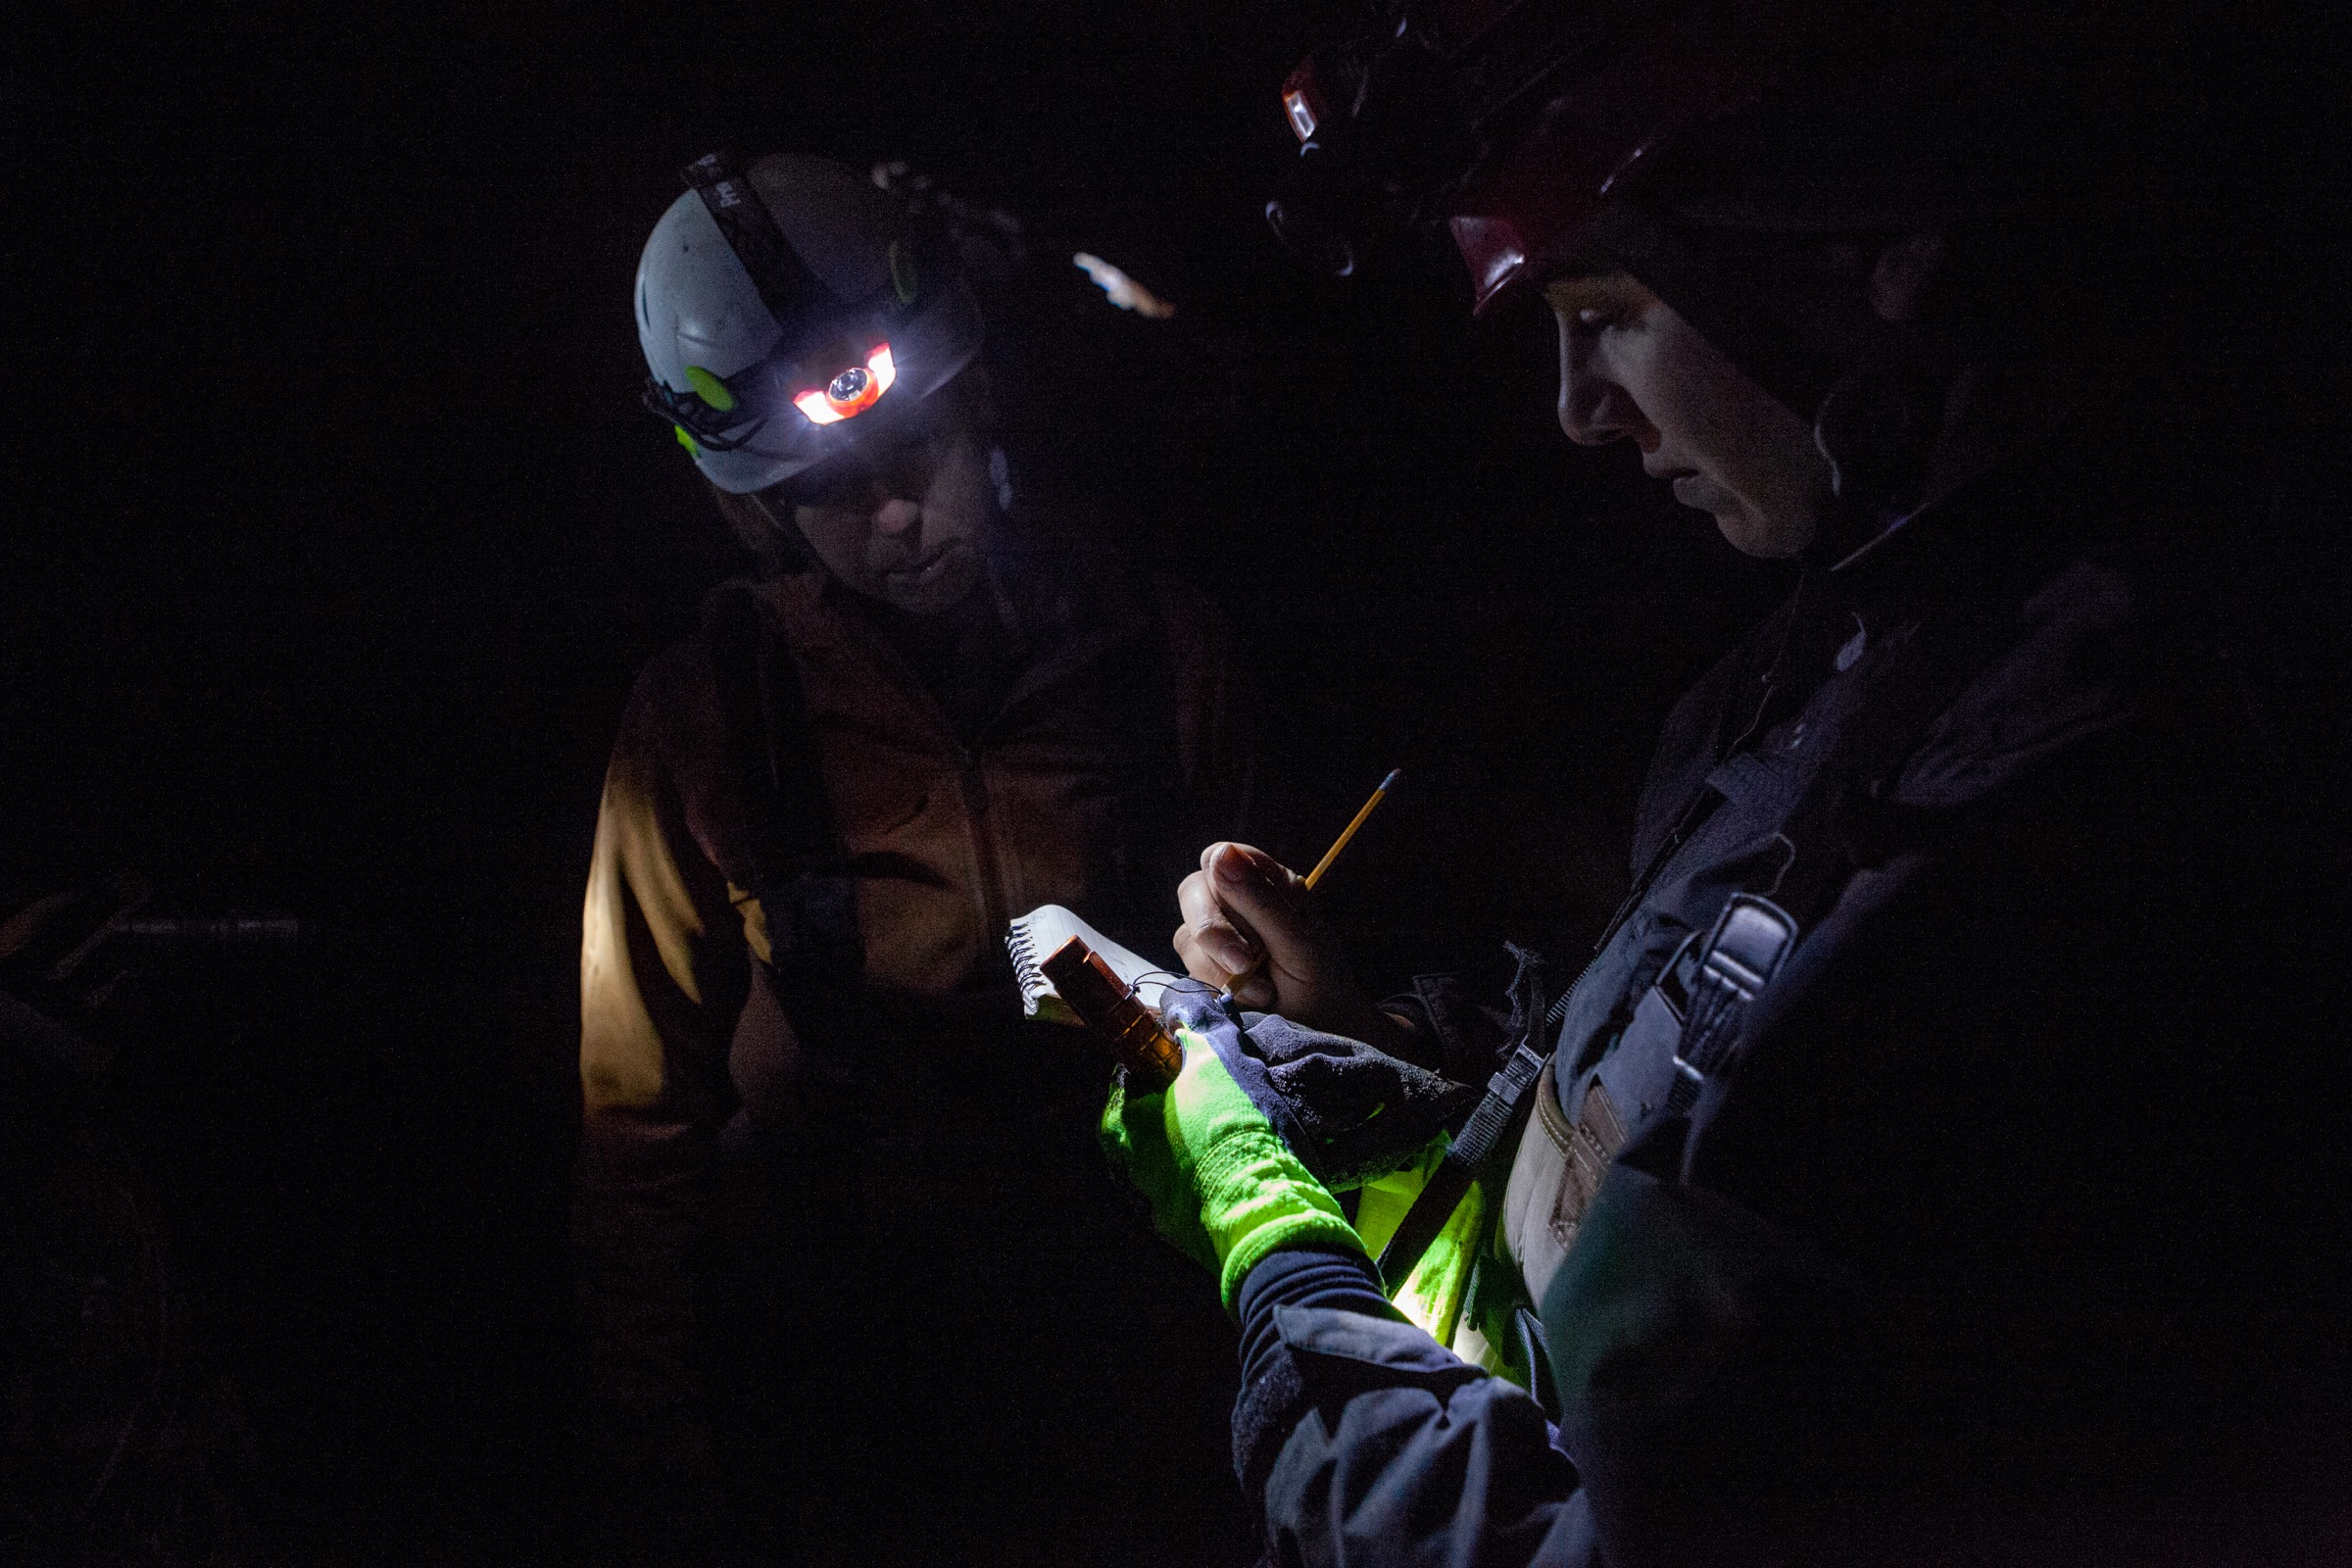 Mandy Bailey (left) and Kate Ritzko (right) of the New York State Department of Environmental Conservation record the number and species of bats that they see during the survey of a cave in Upstate New York.